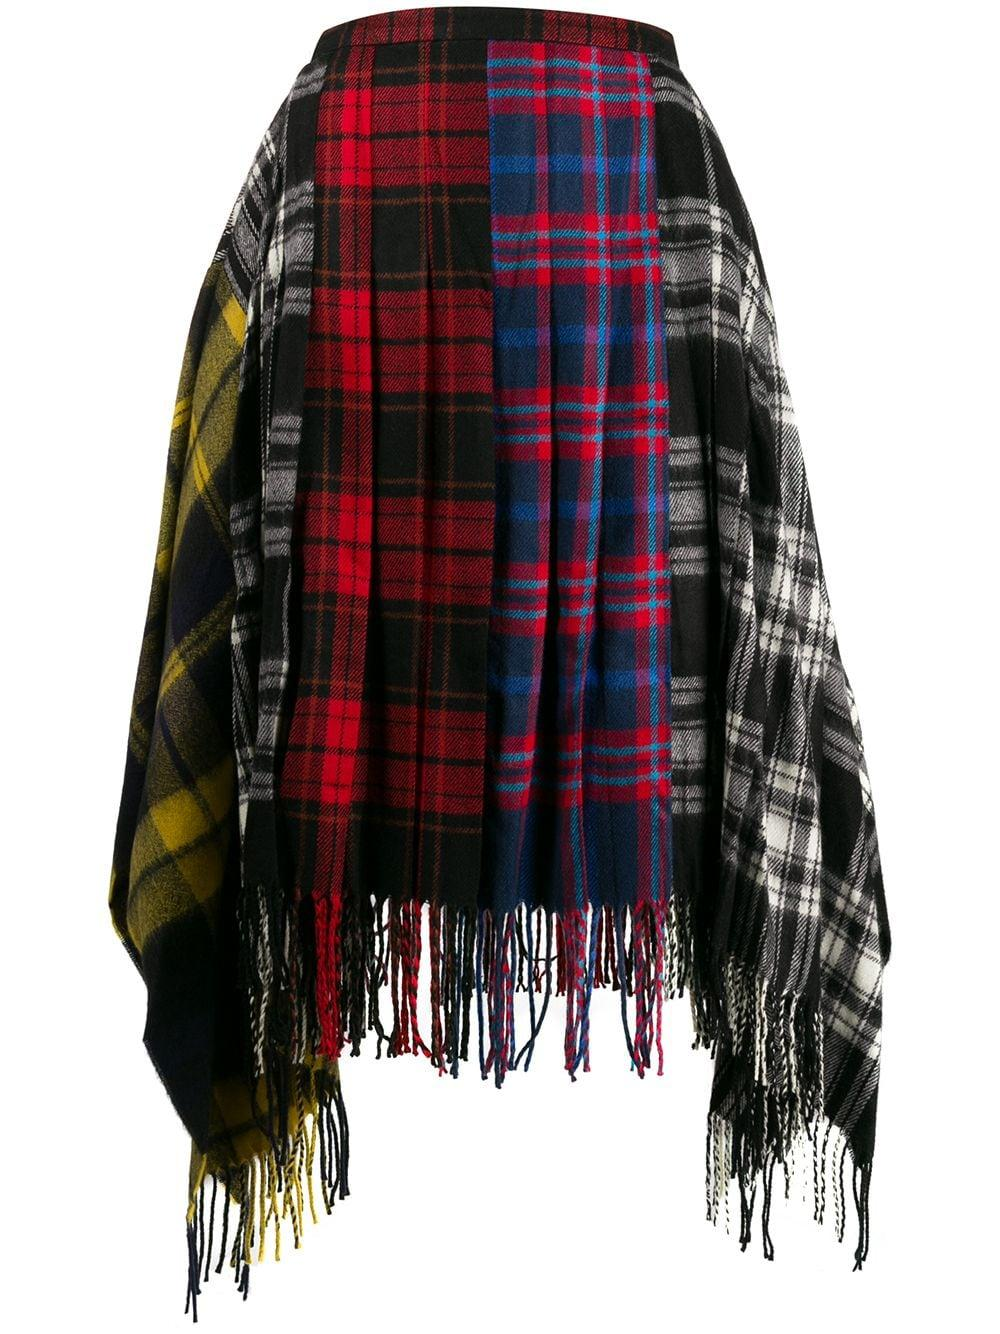 Juun.J plaid patterned fringed skirt